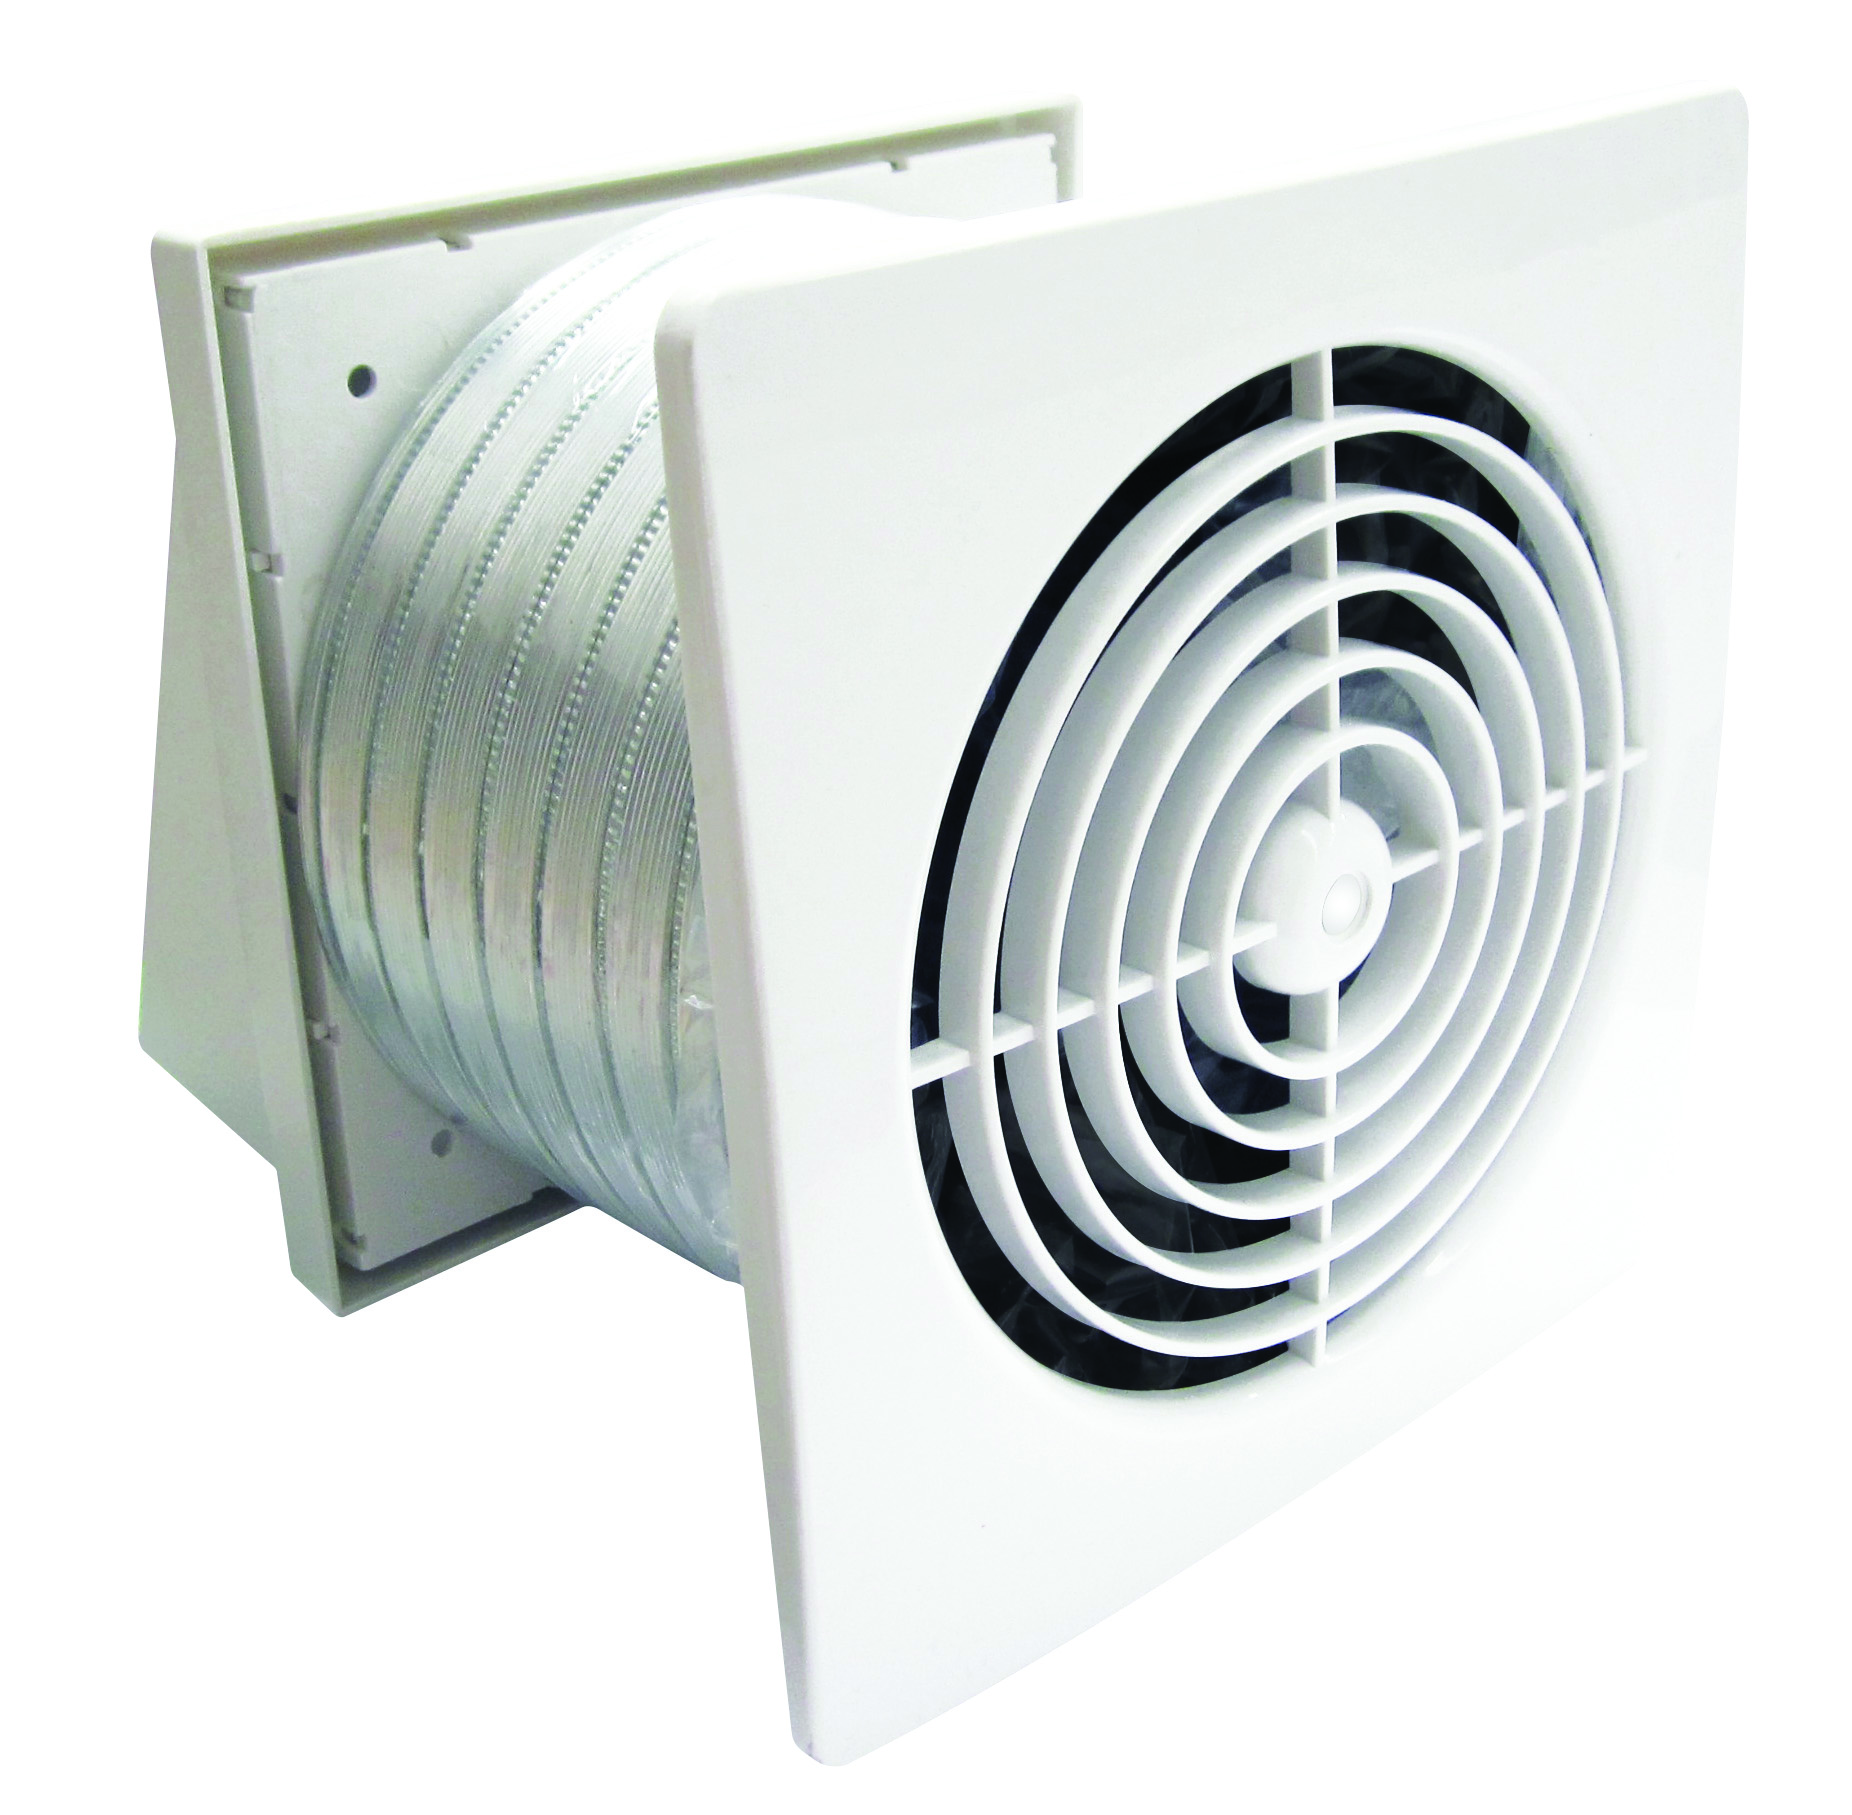 Through Wall Fan : Simx manrose pro series xplp low profile fan kits